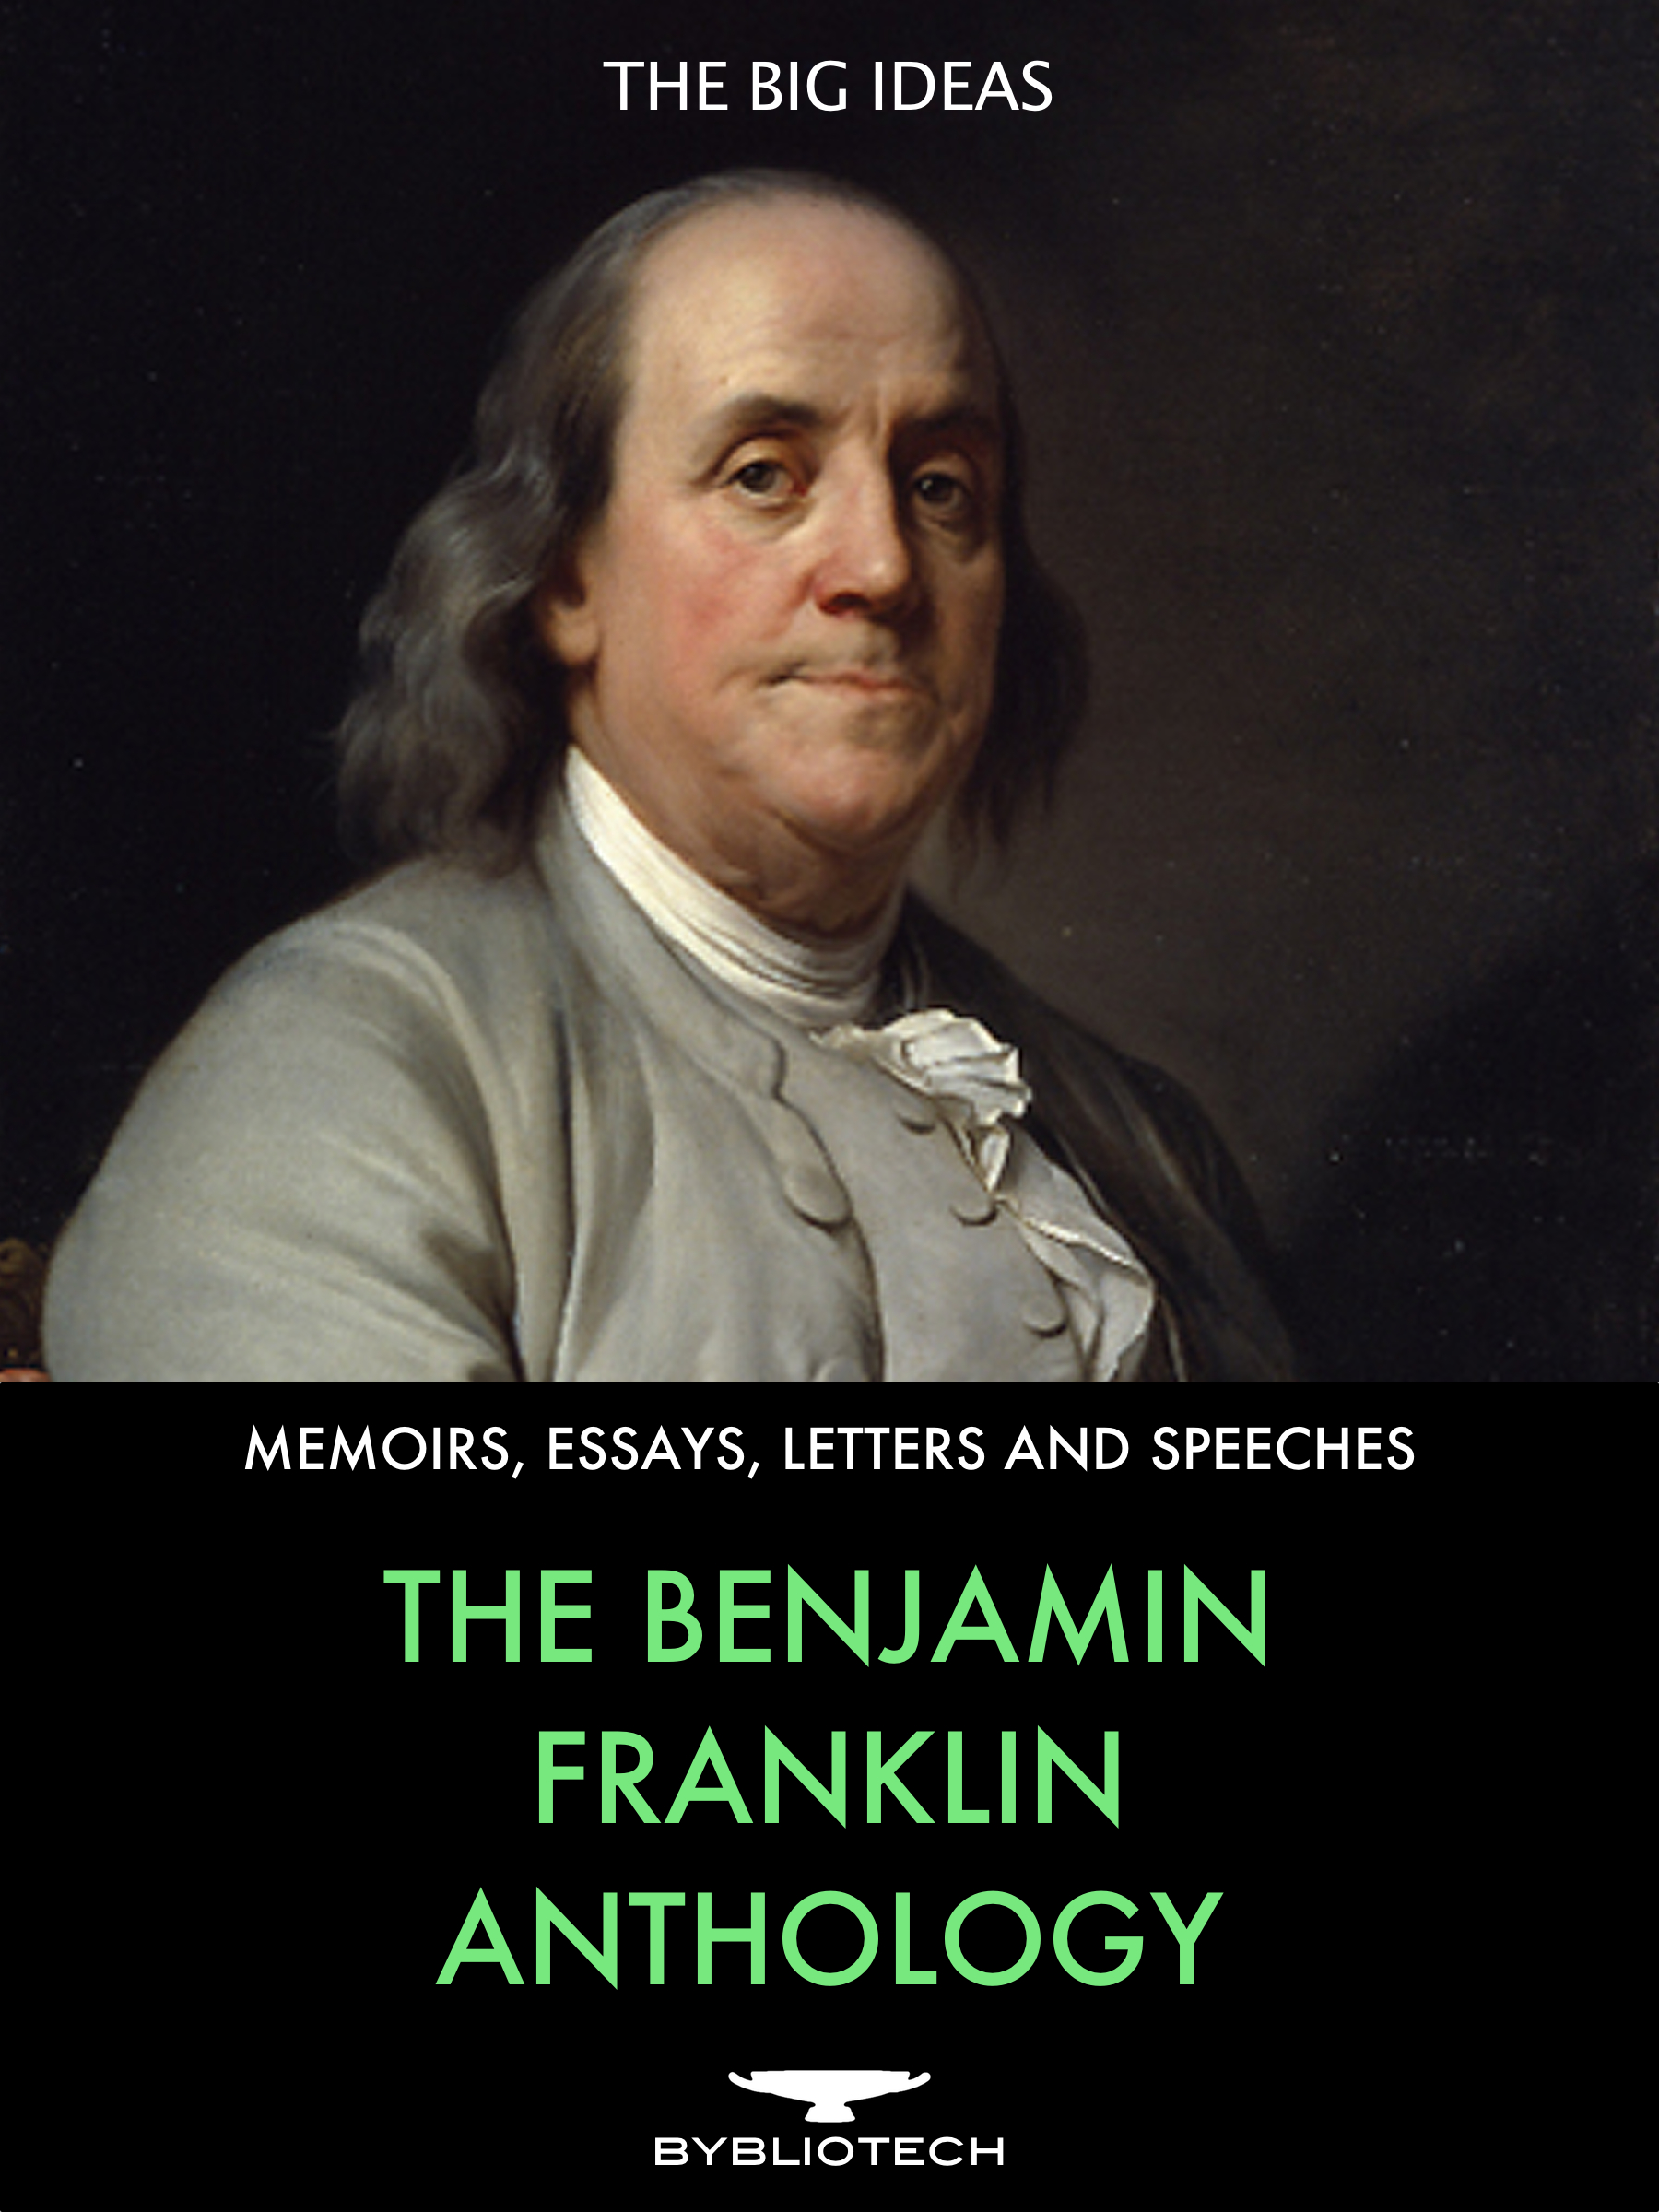 Benjamin Franklin - The Benjamin Franklin Anthology